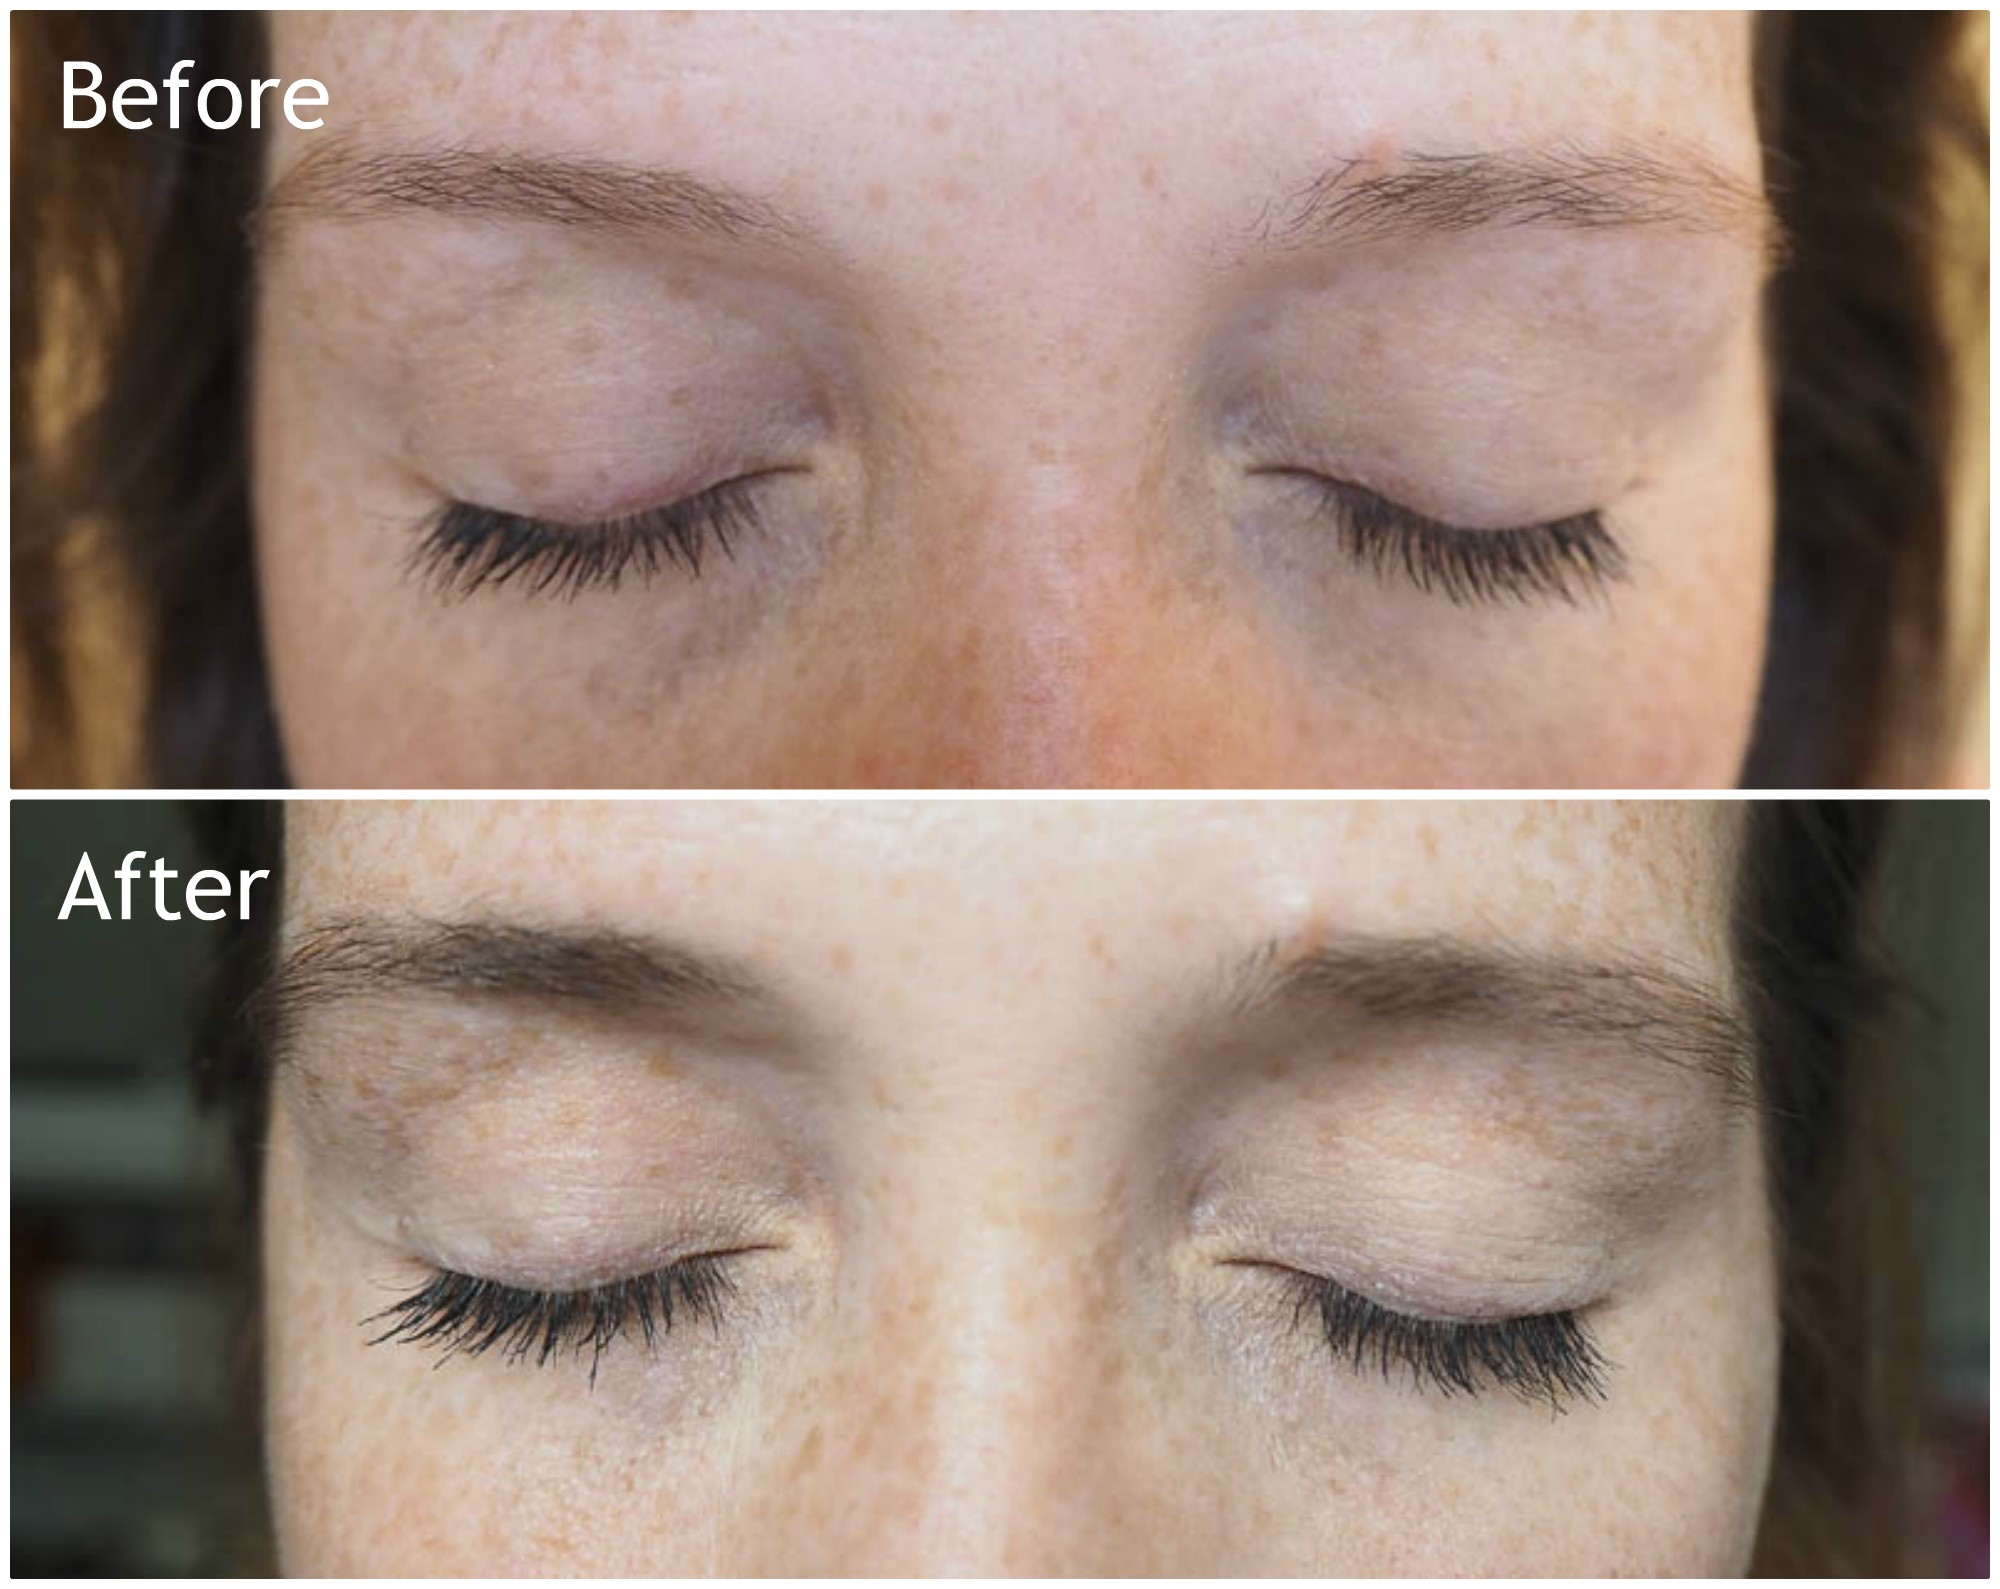 9dde4ea56b5 I think the most obvious difference in these are my eyebrows. They are much  darker and thicker after 60 days. I had noticed that I was having to pluck  them ...